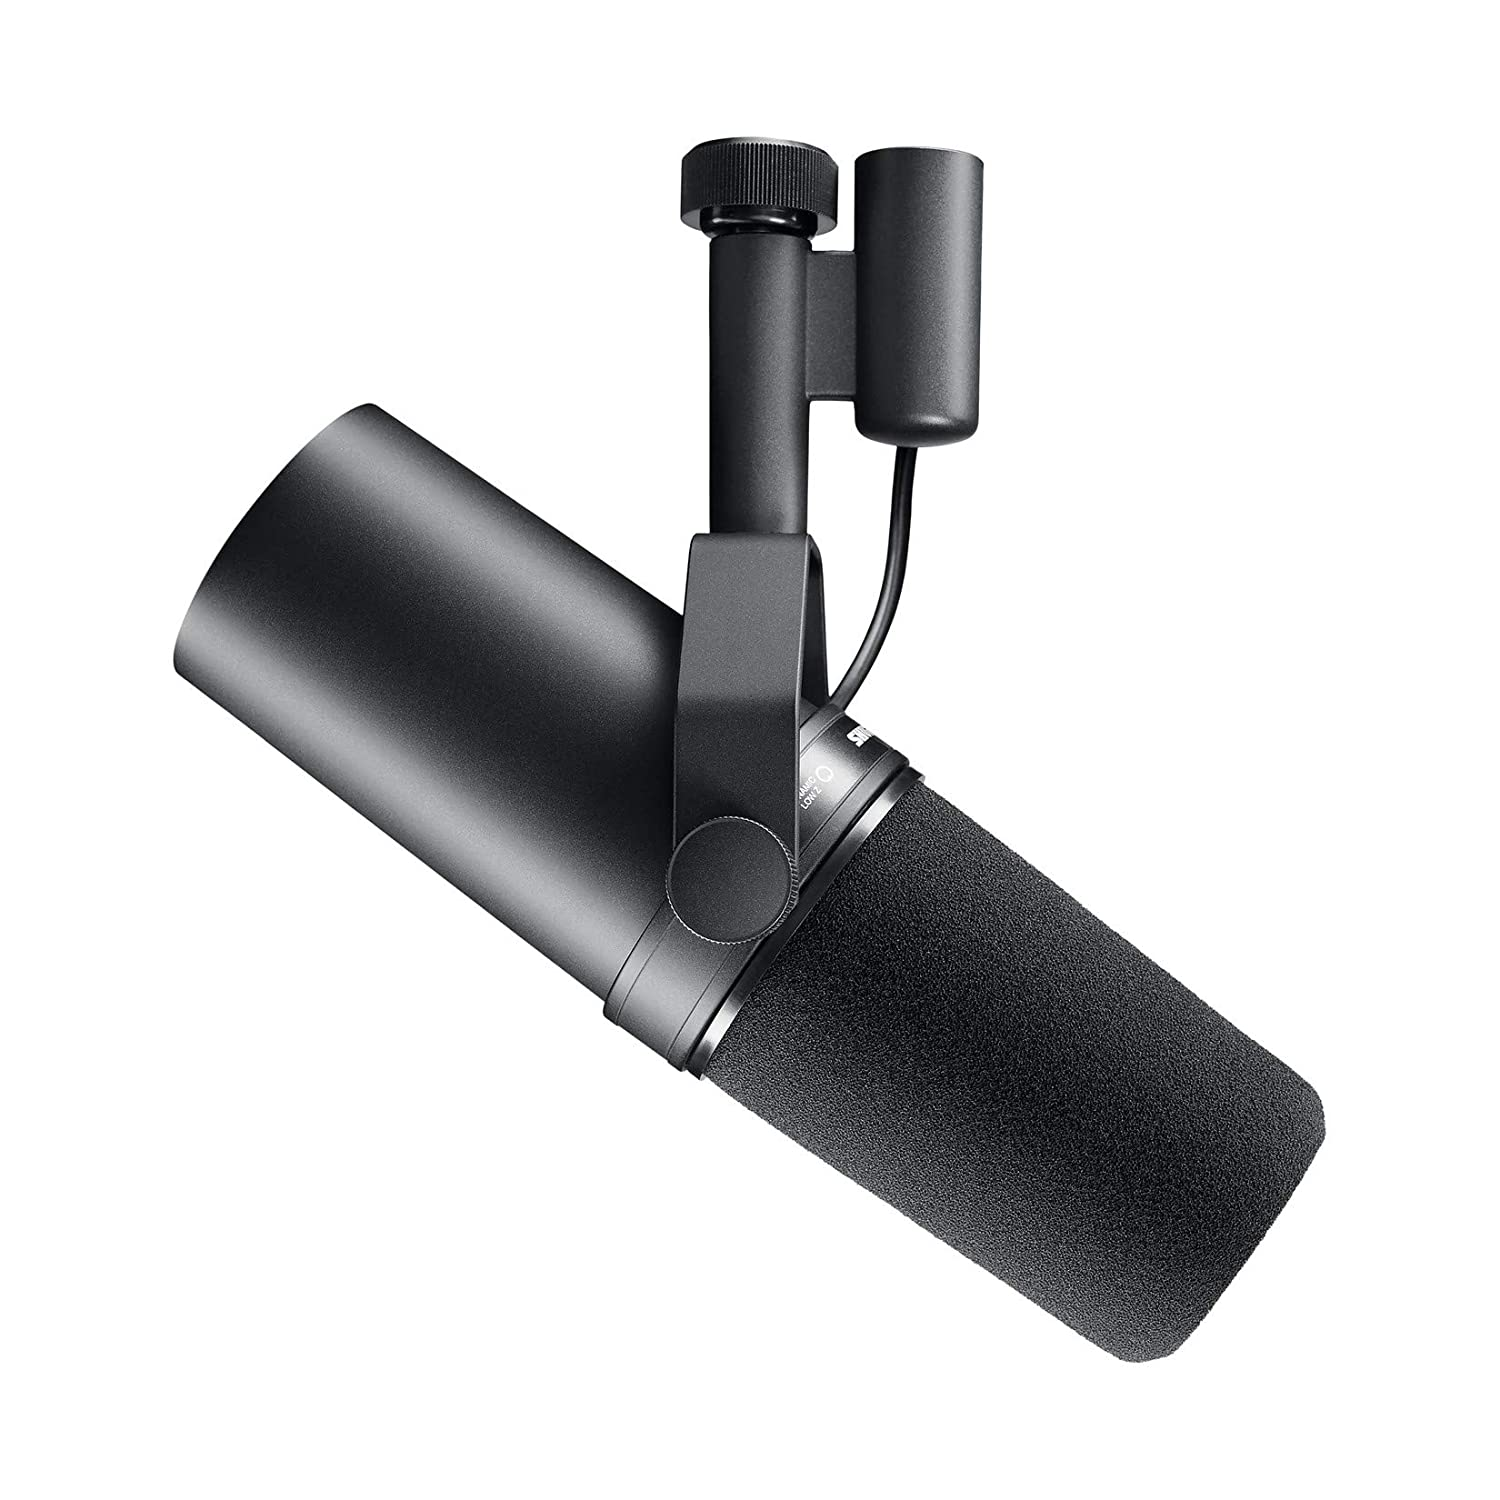 Top 10 Best Chinese Microphones Reviews in 2020 2